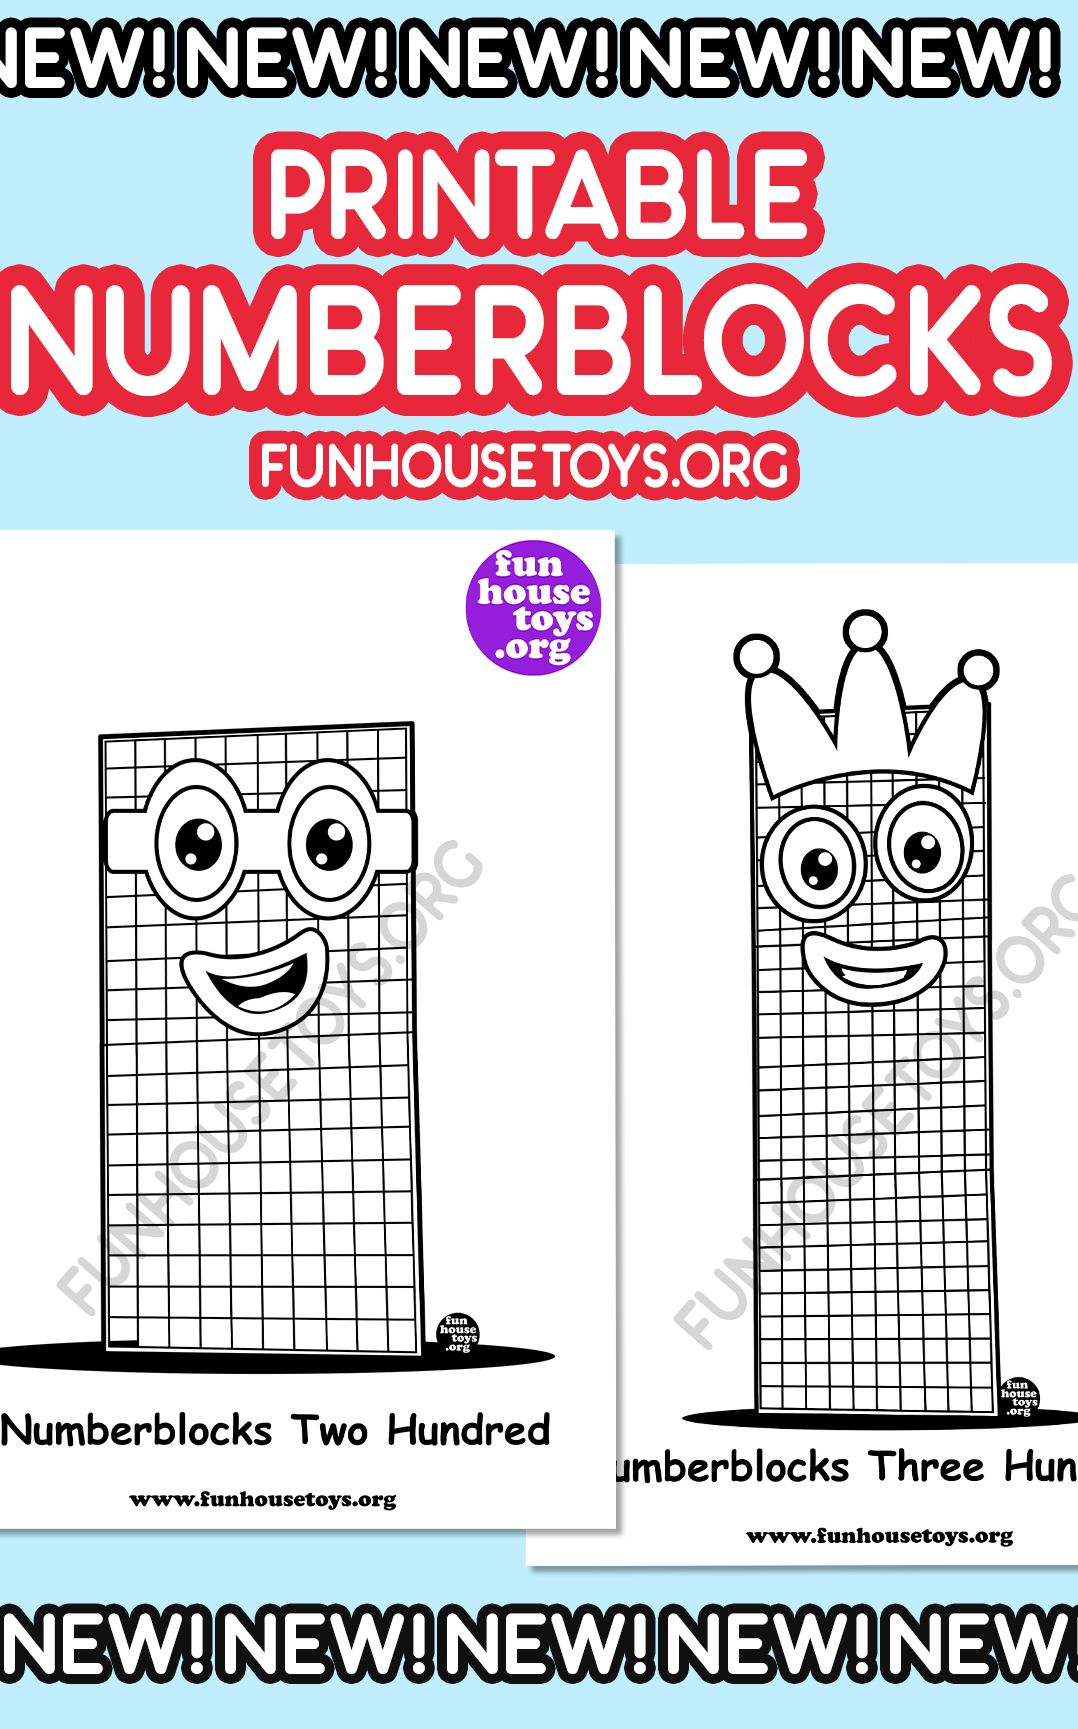 New 200 To 900 Numberblocks Coloring Pages In 2020 Fun Printables For Kids Coloring Pages Coloring Pages For Kids